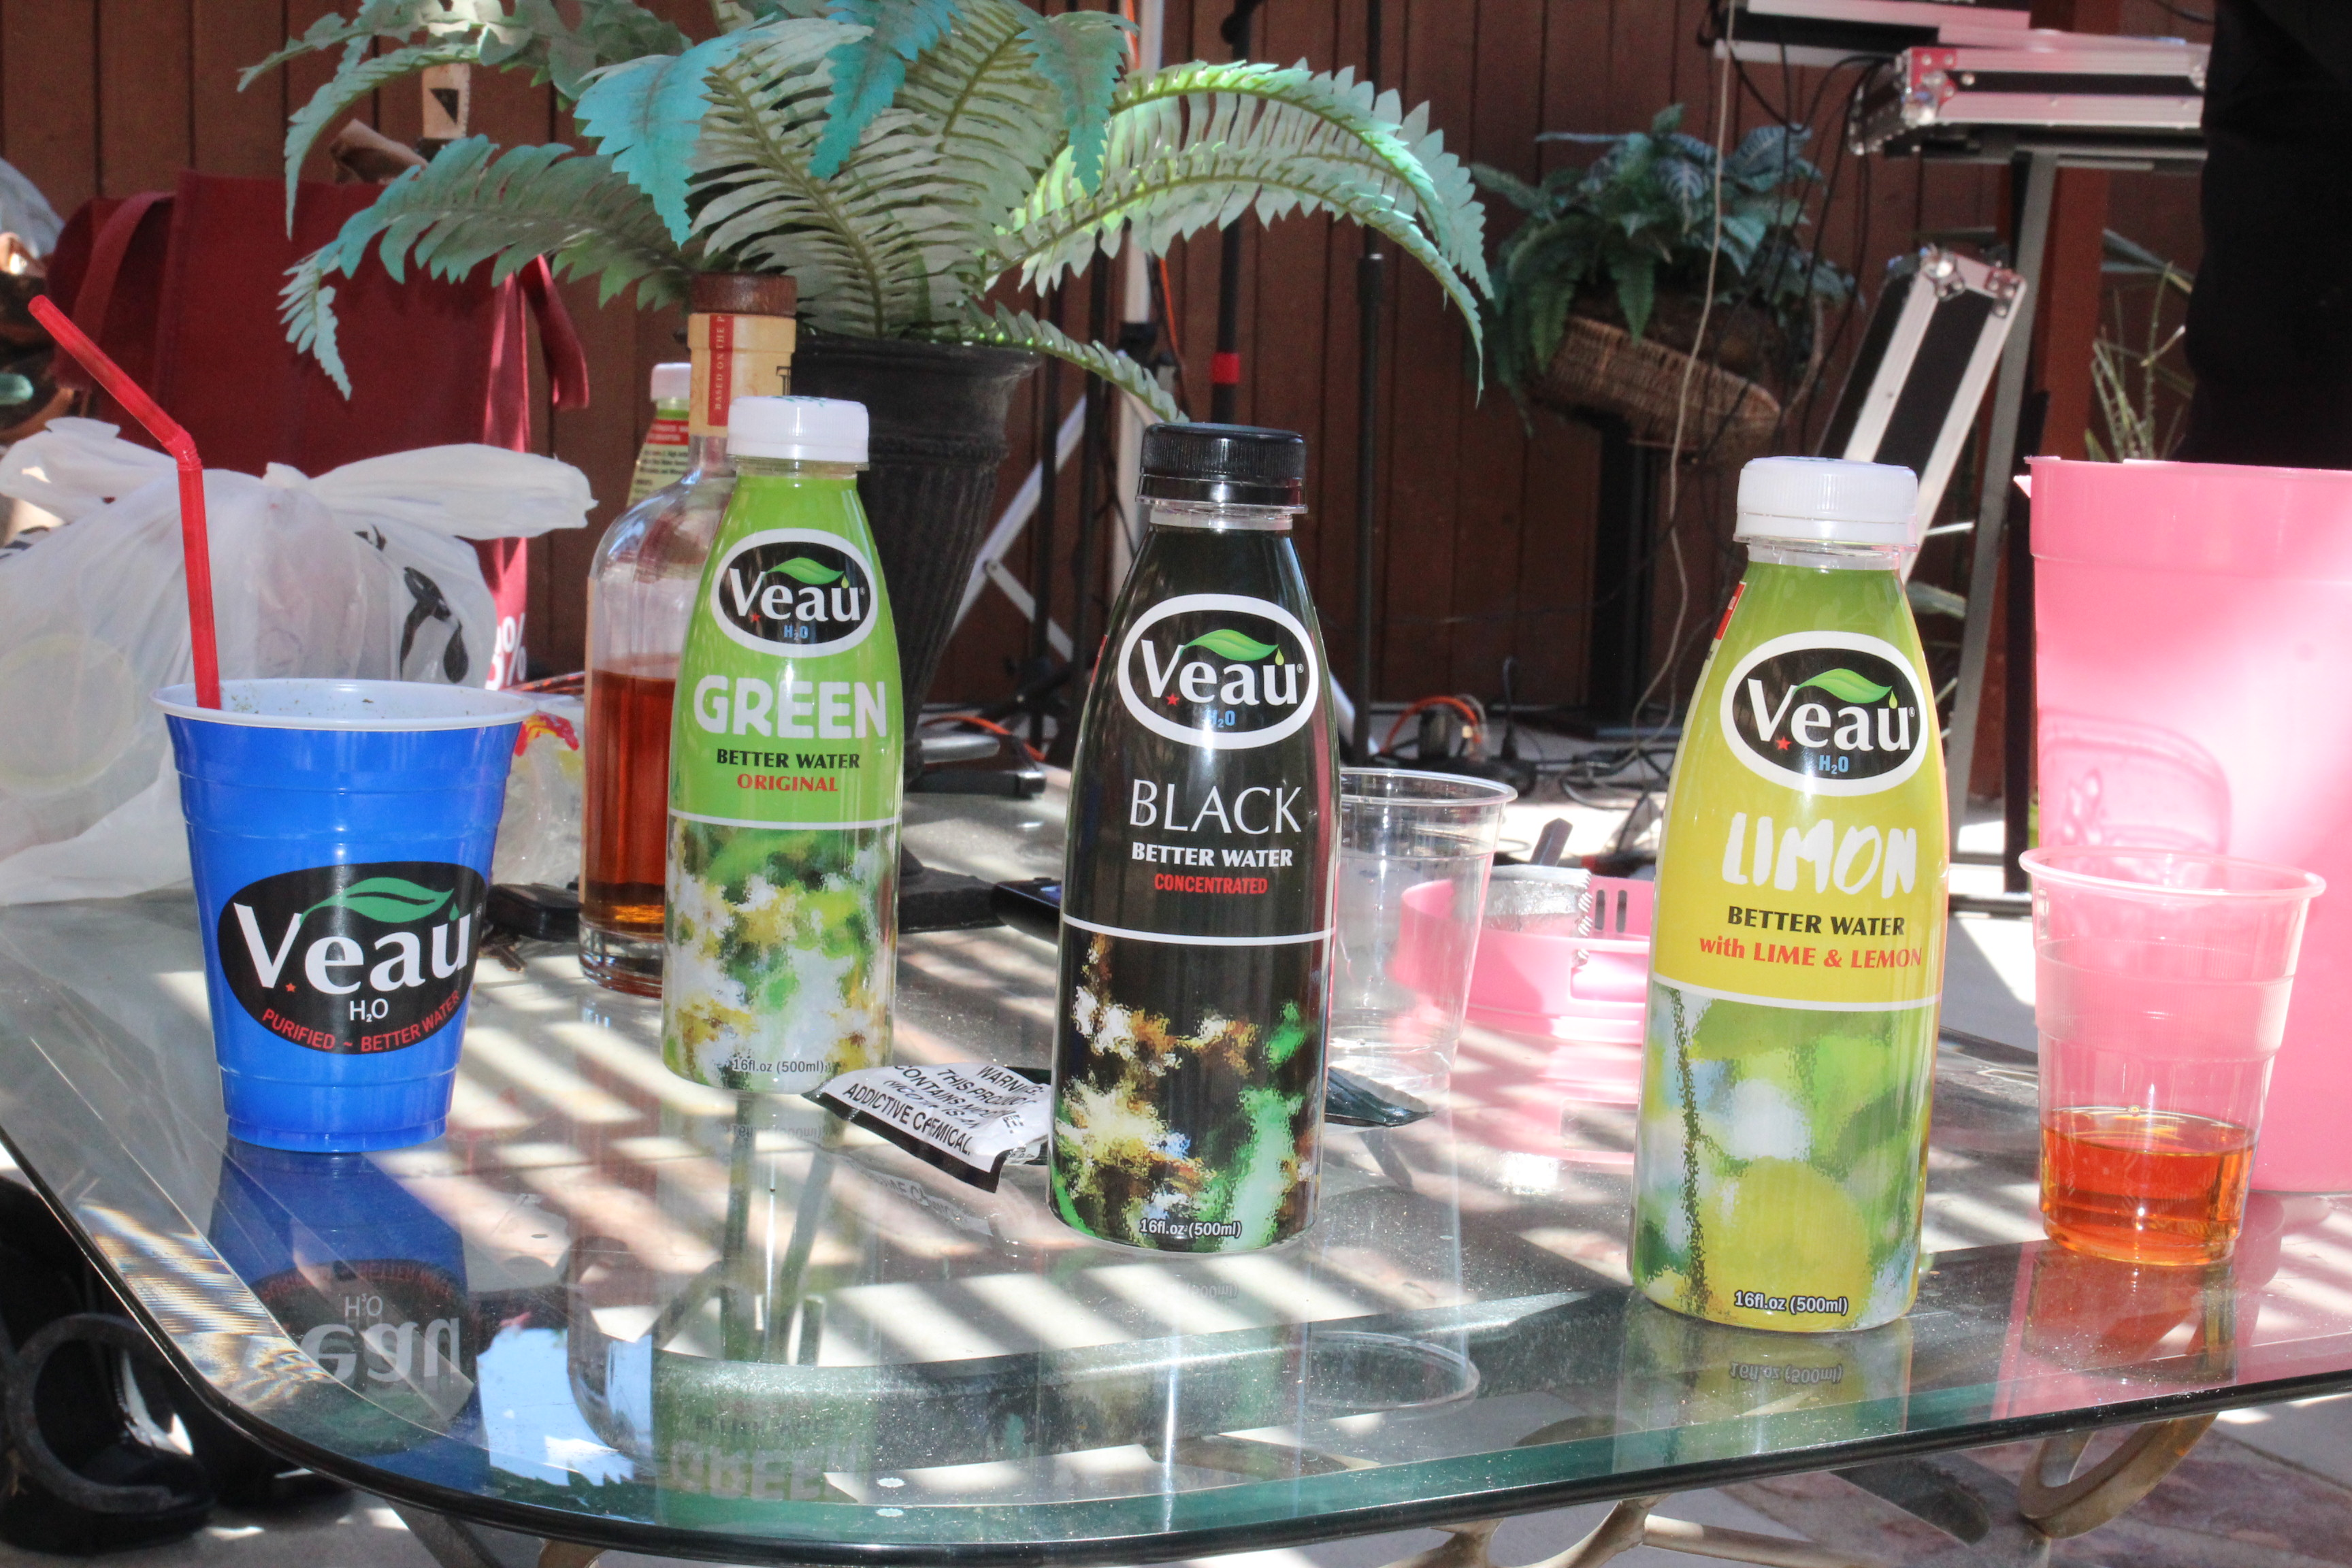 7.Veau Drinks and Cups Patio